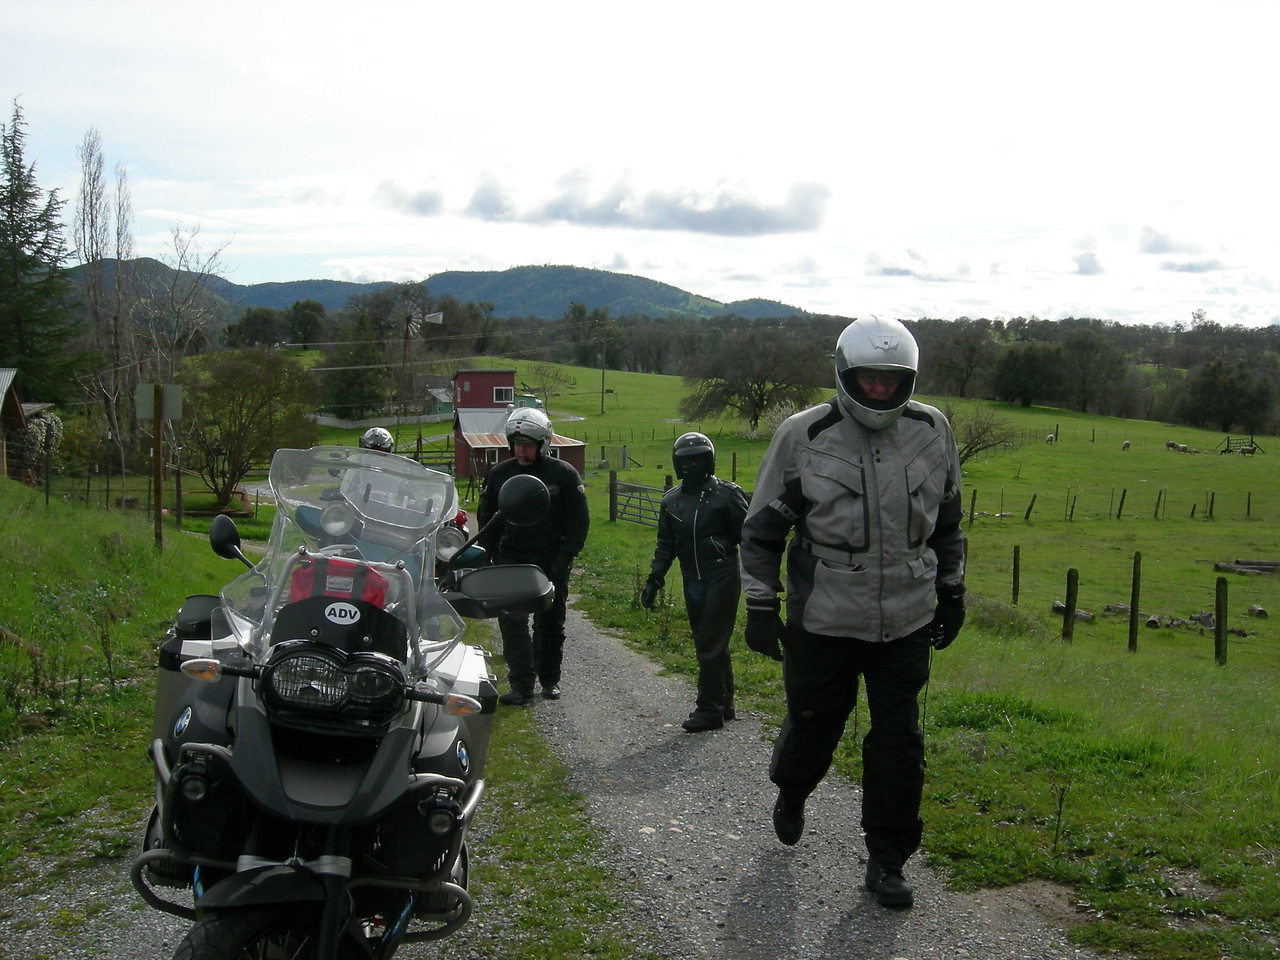 The group forged ahead but turned around due to the uncertainty of the road condition ahead.